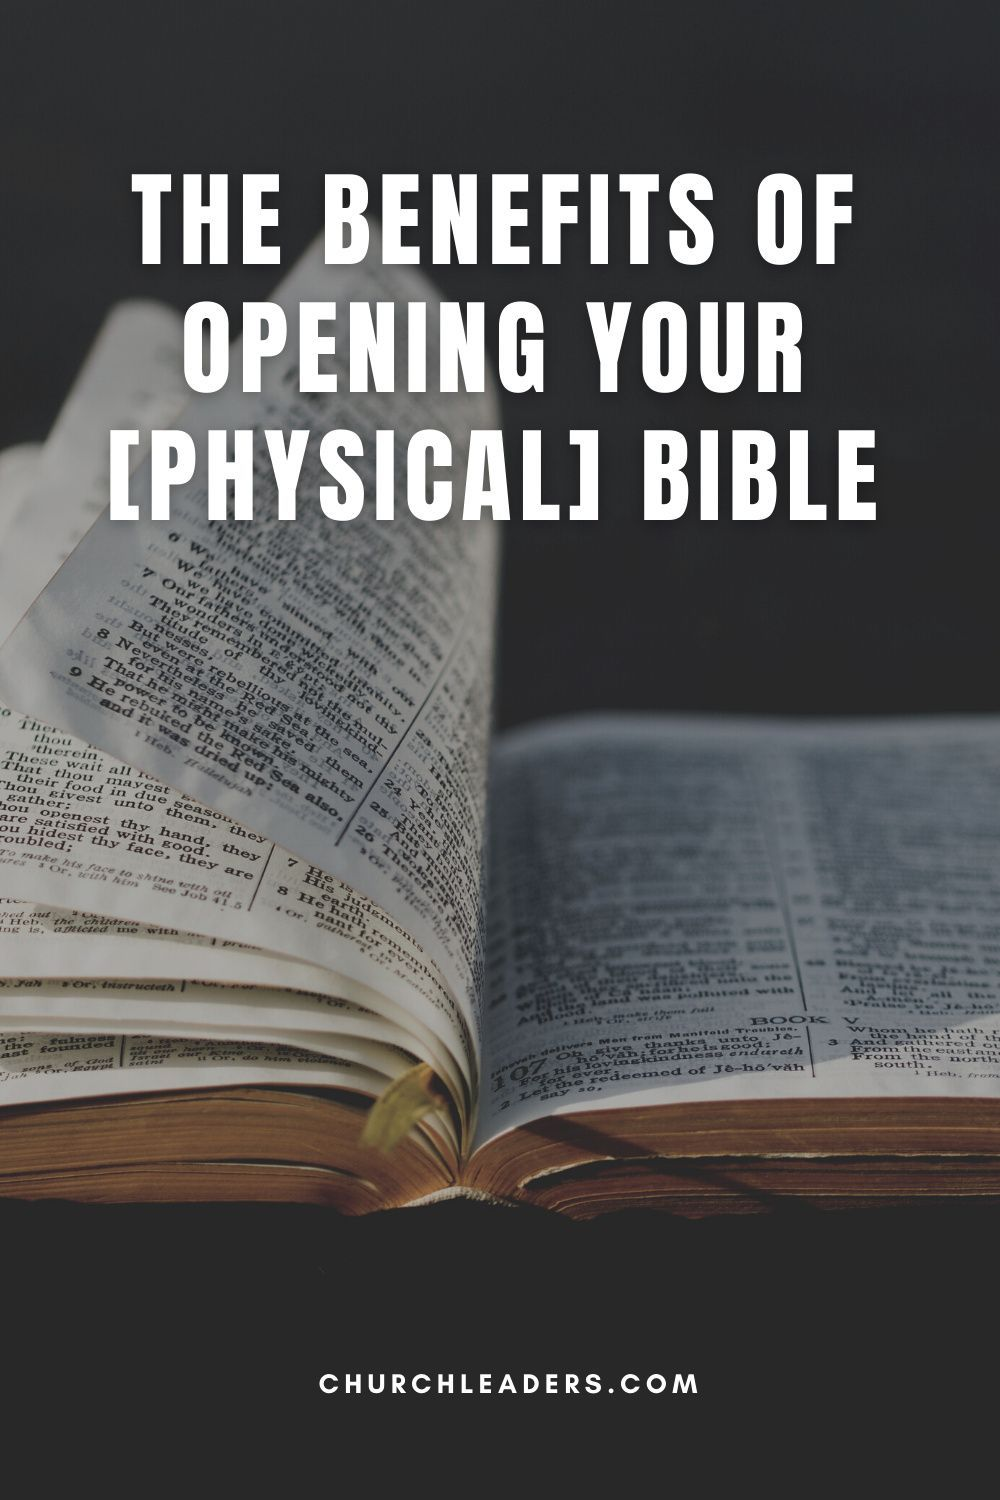 The Benefits of Opening God's Word .... Your Physical Bible